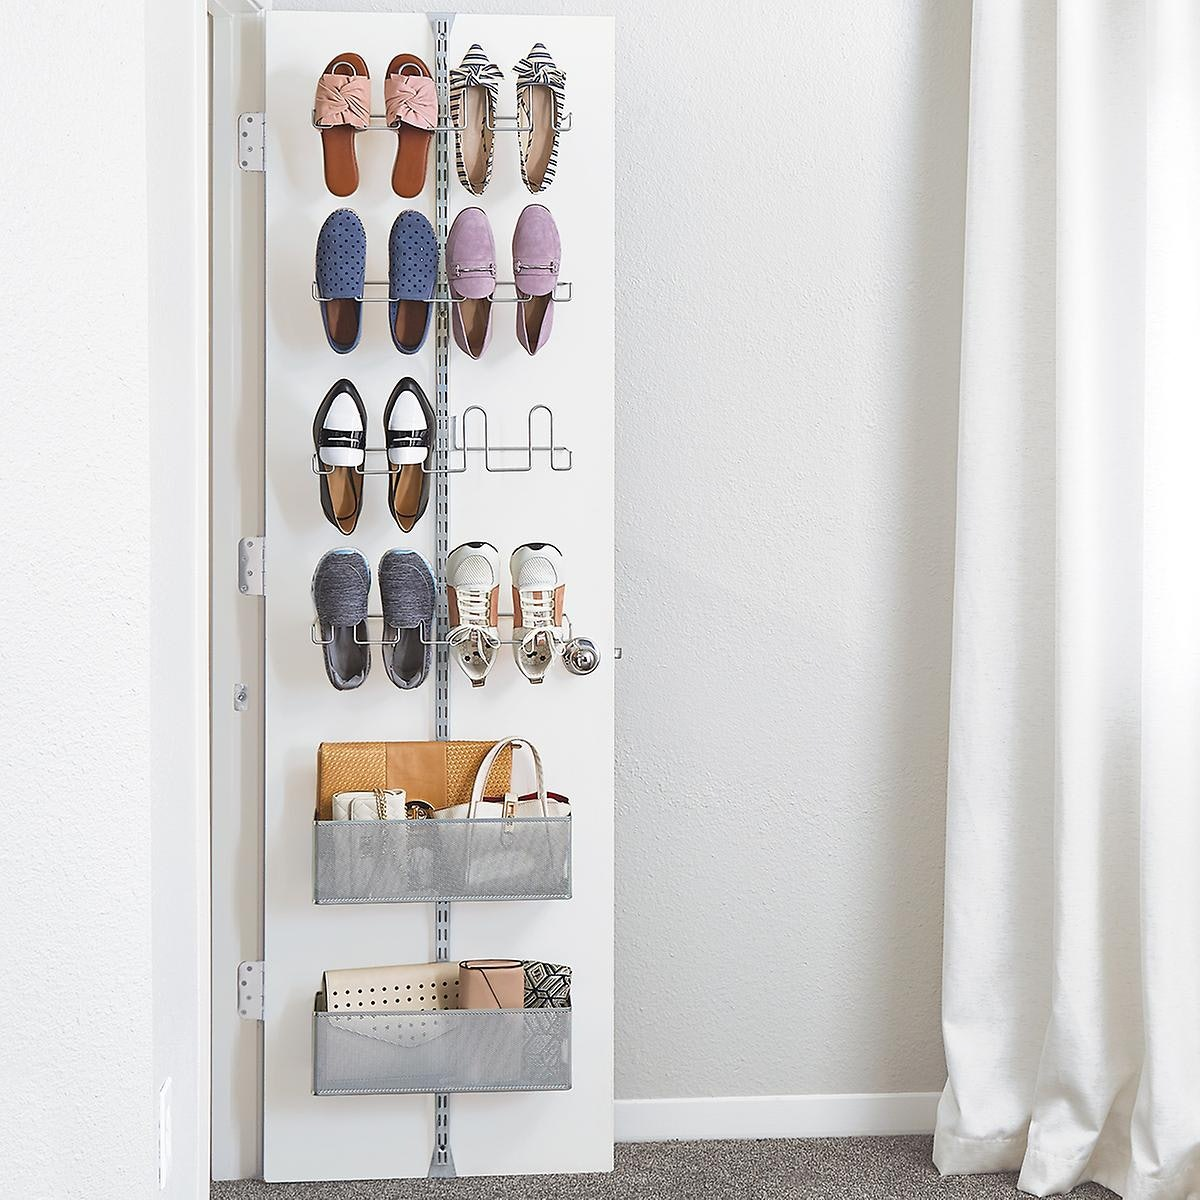 How To Store Shoes According To Lauren Conrad And Kim